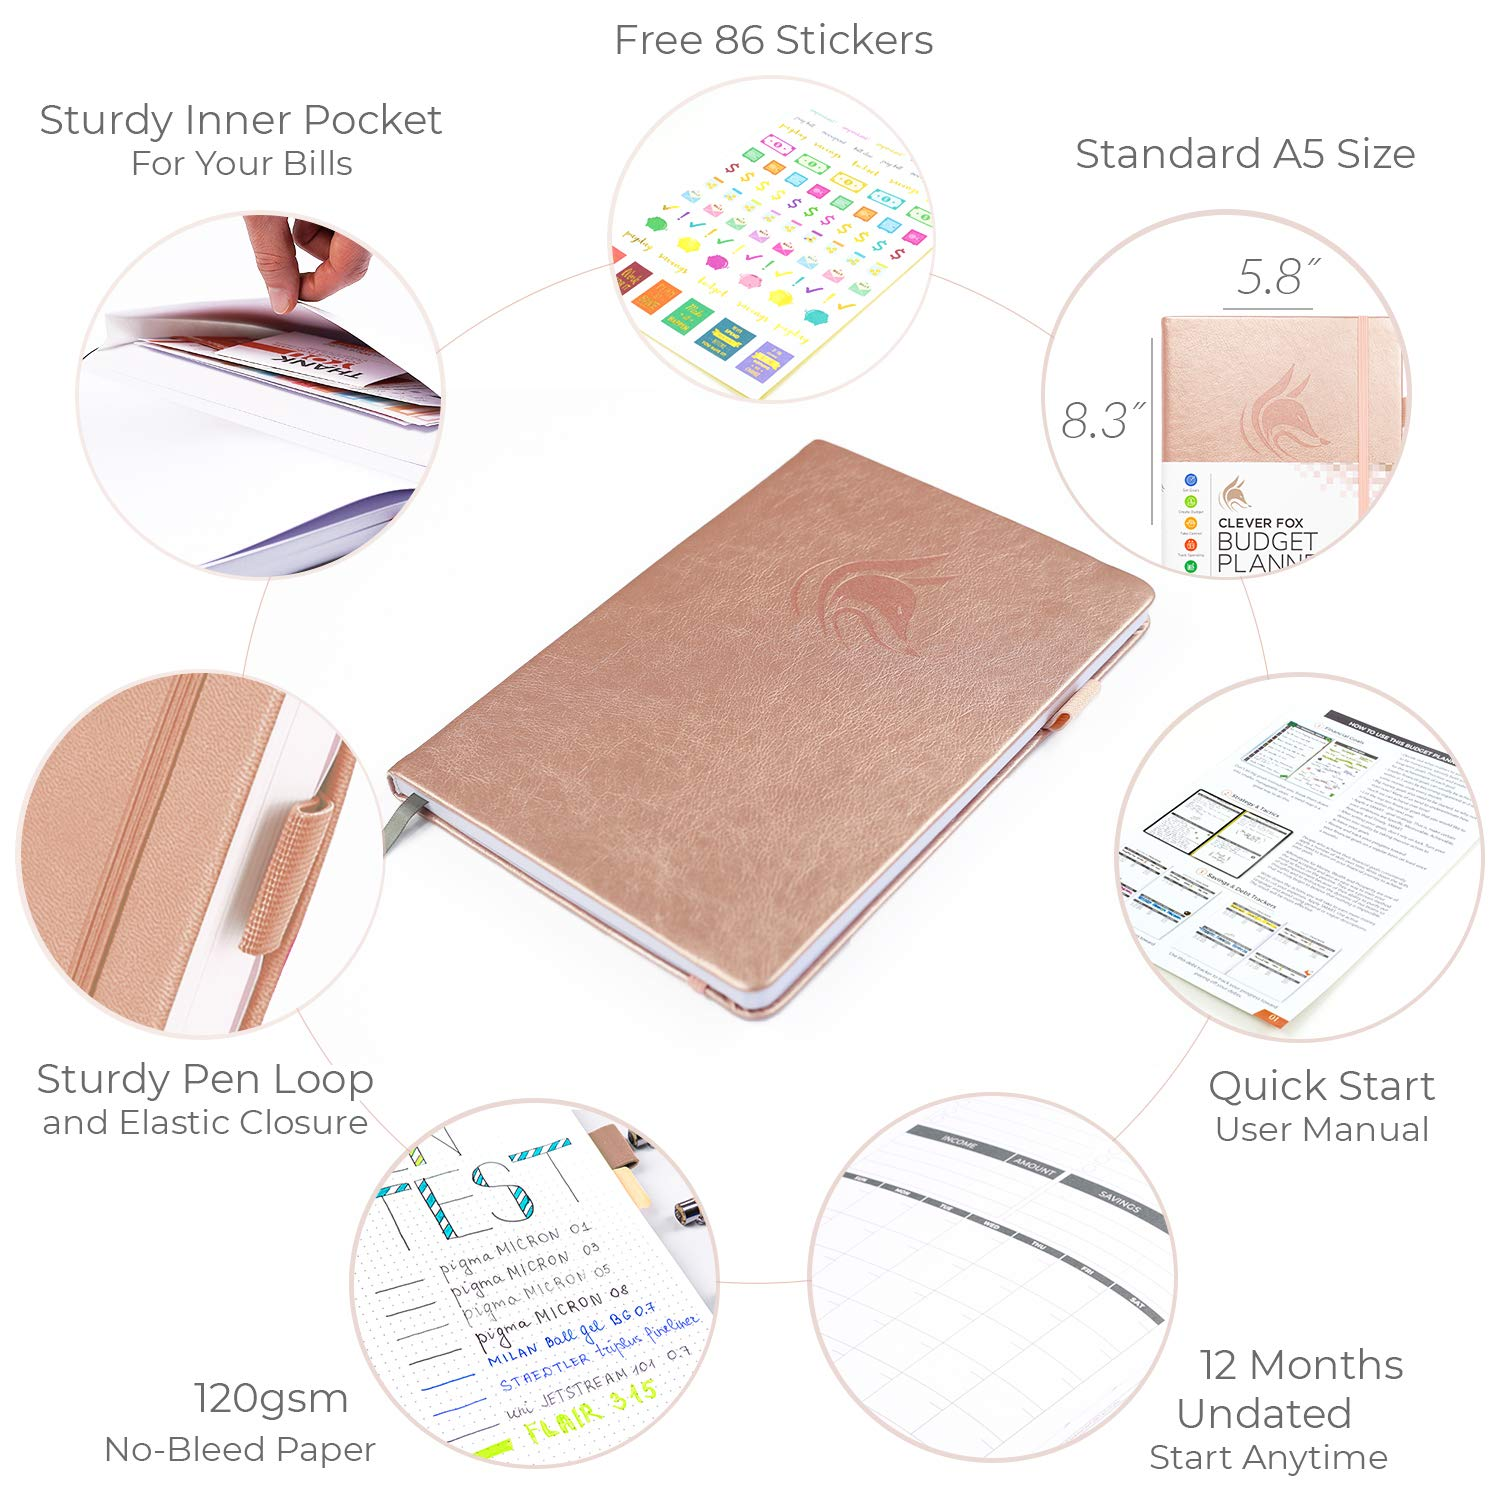 Undated 14.25 X 21 cm Start Anytime Finance Planner /& Accounts Book to Take Control of Your Money Clever Fox Budget Planner Viola, A5 Monthly Budgeting Journal Expense Tracker Notebook